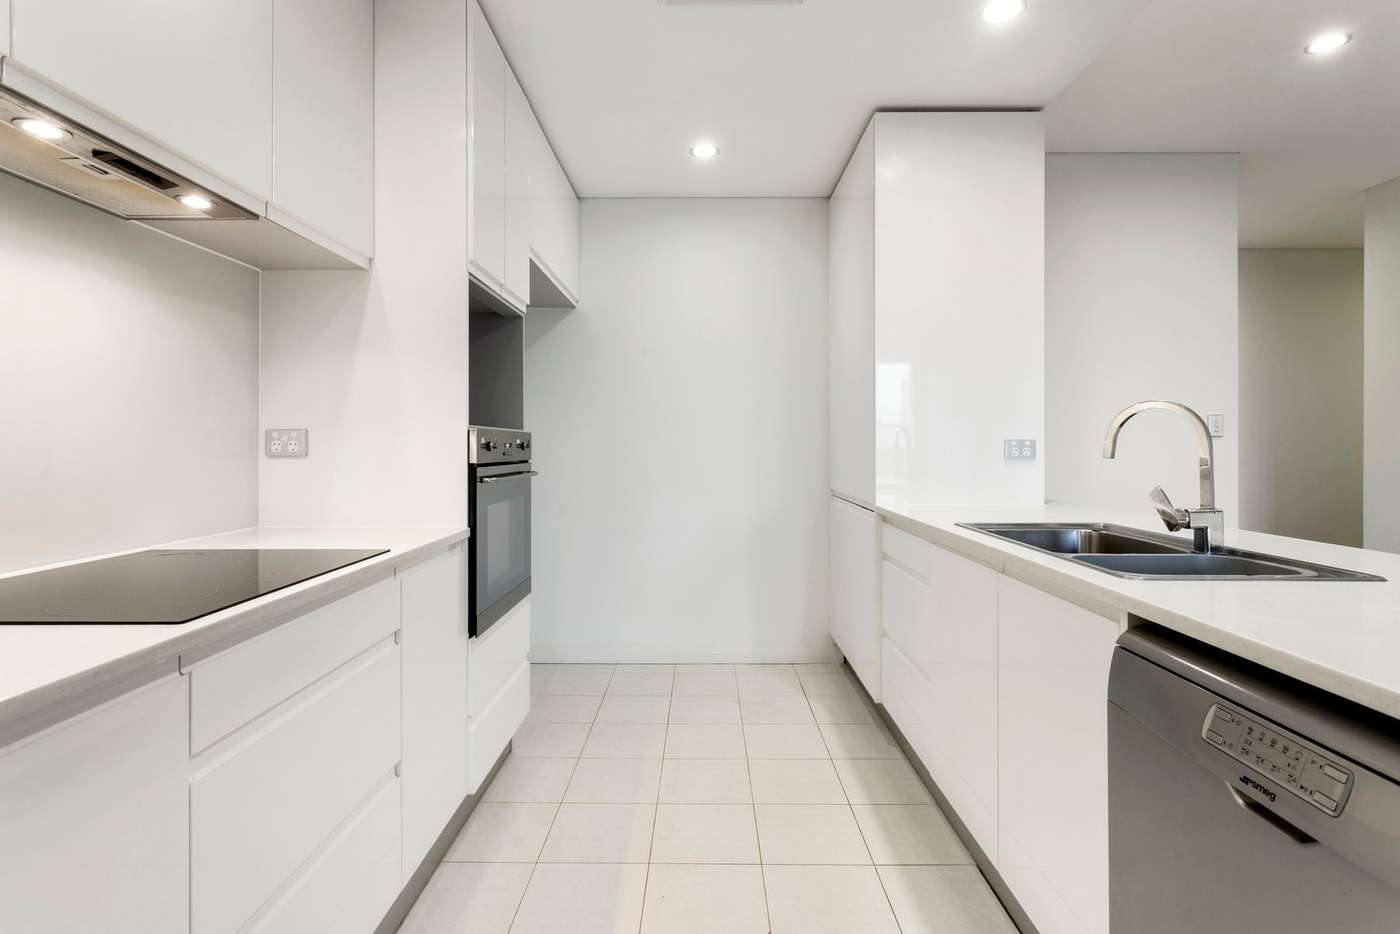 Fifth view of Homely apartment listing, 27/52 Wickham Street, East Perth WA 6004